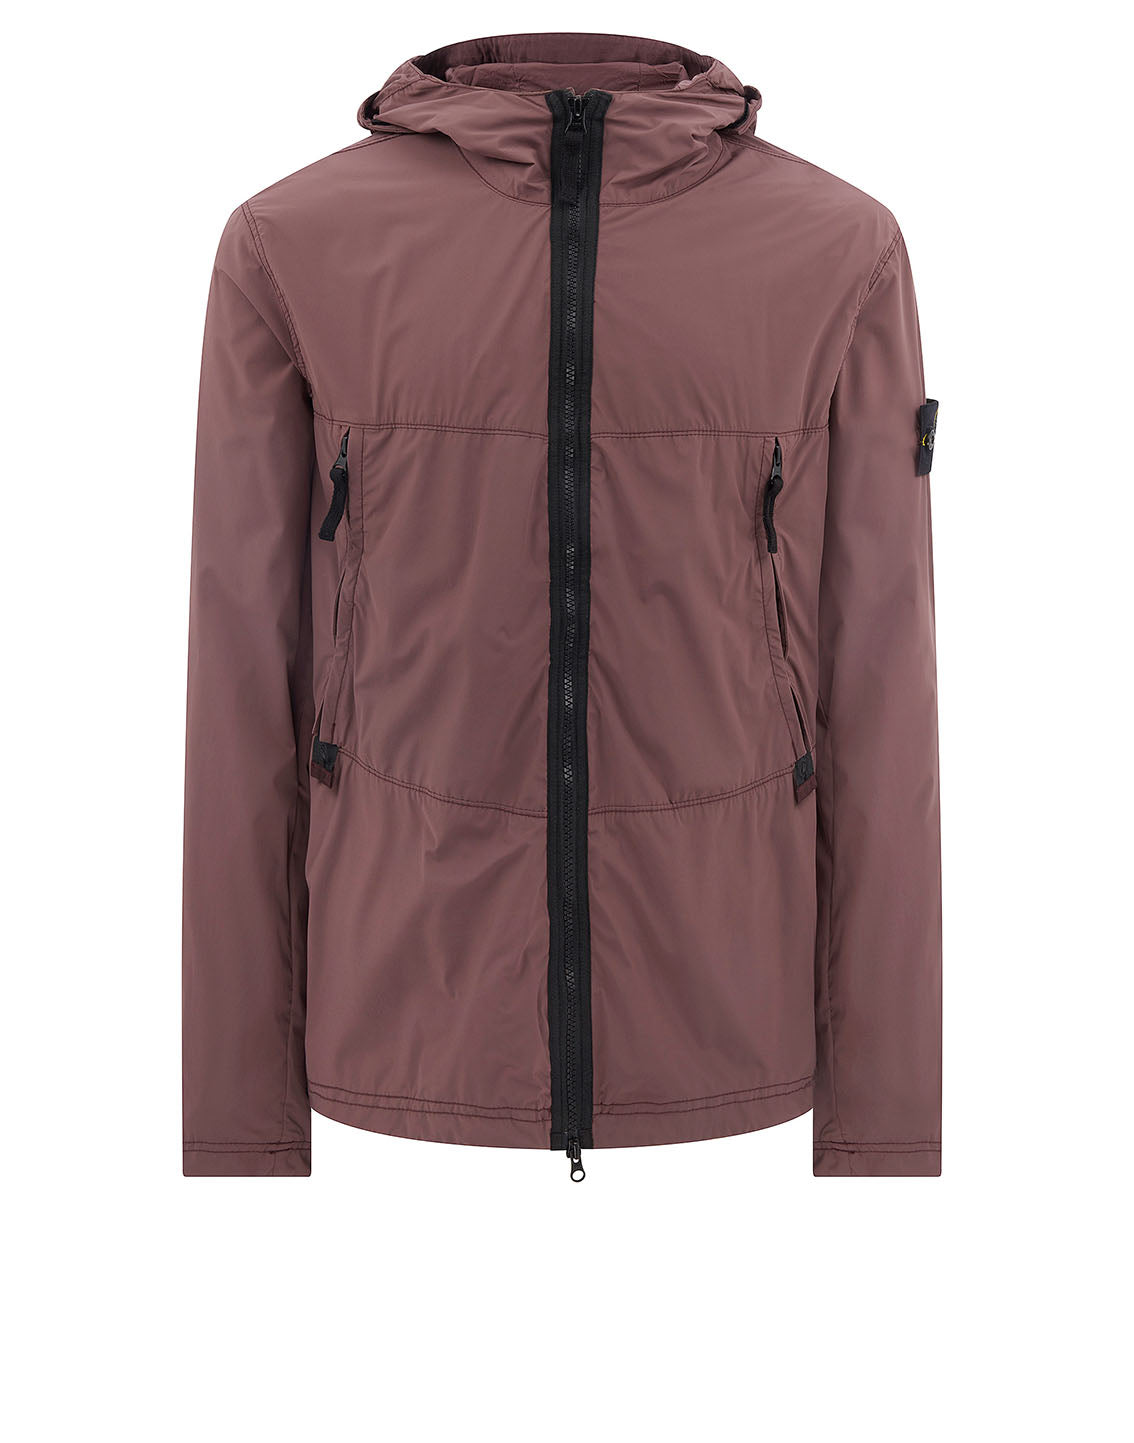 40131 SKIN TOUCH NYLON-TC Jacket in Burgundy